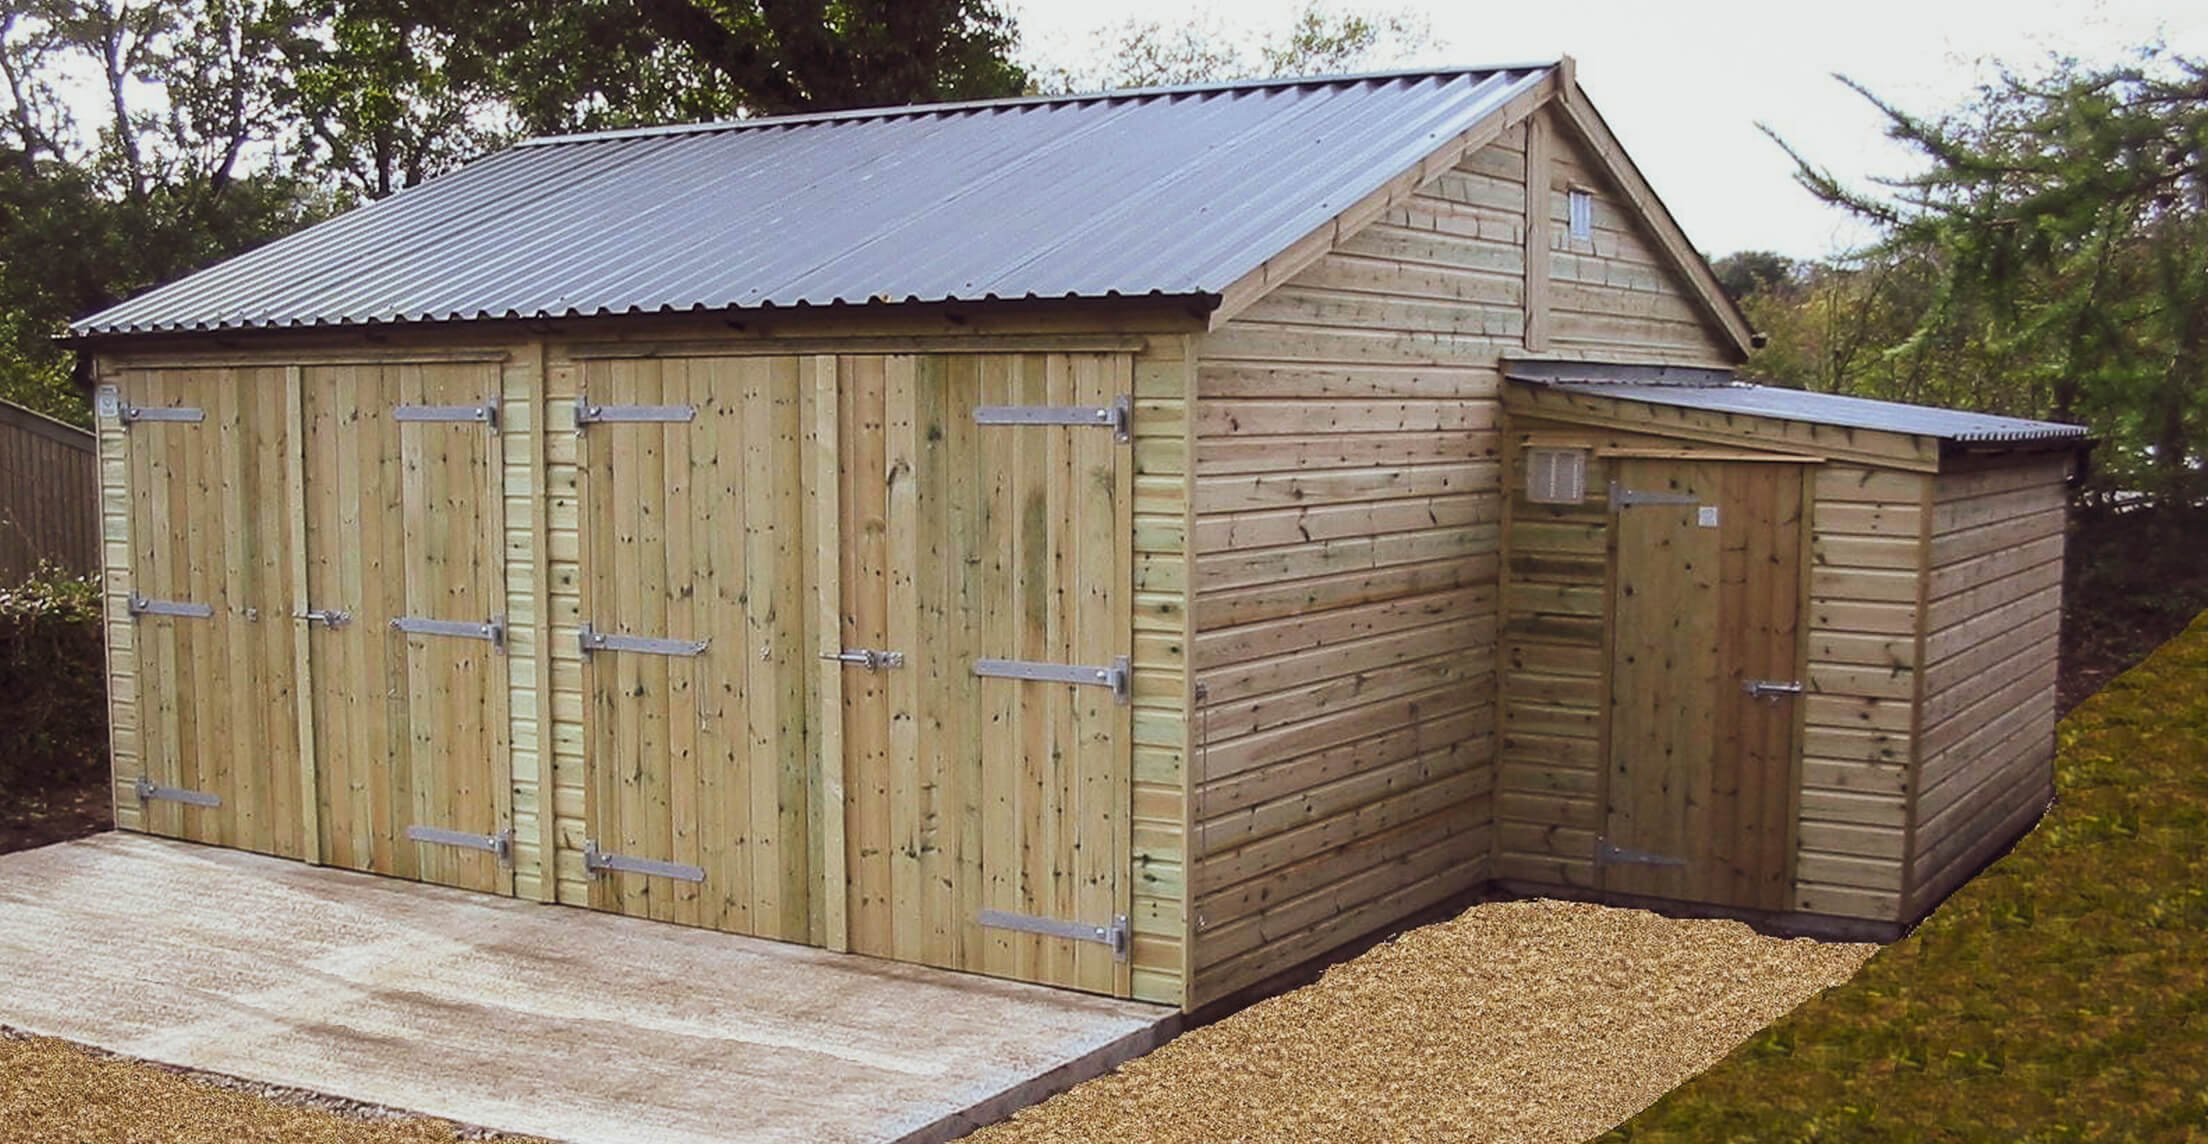 6-x-6m Double Garage and Store